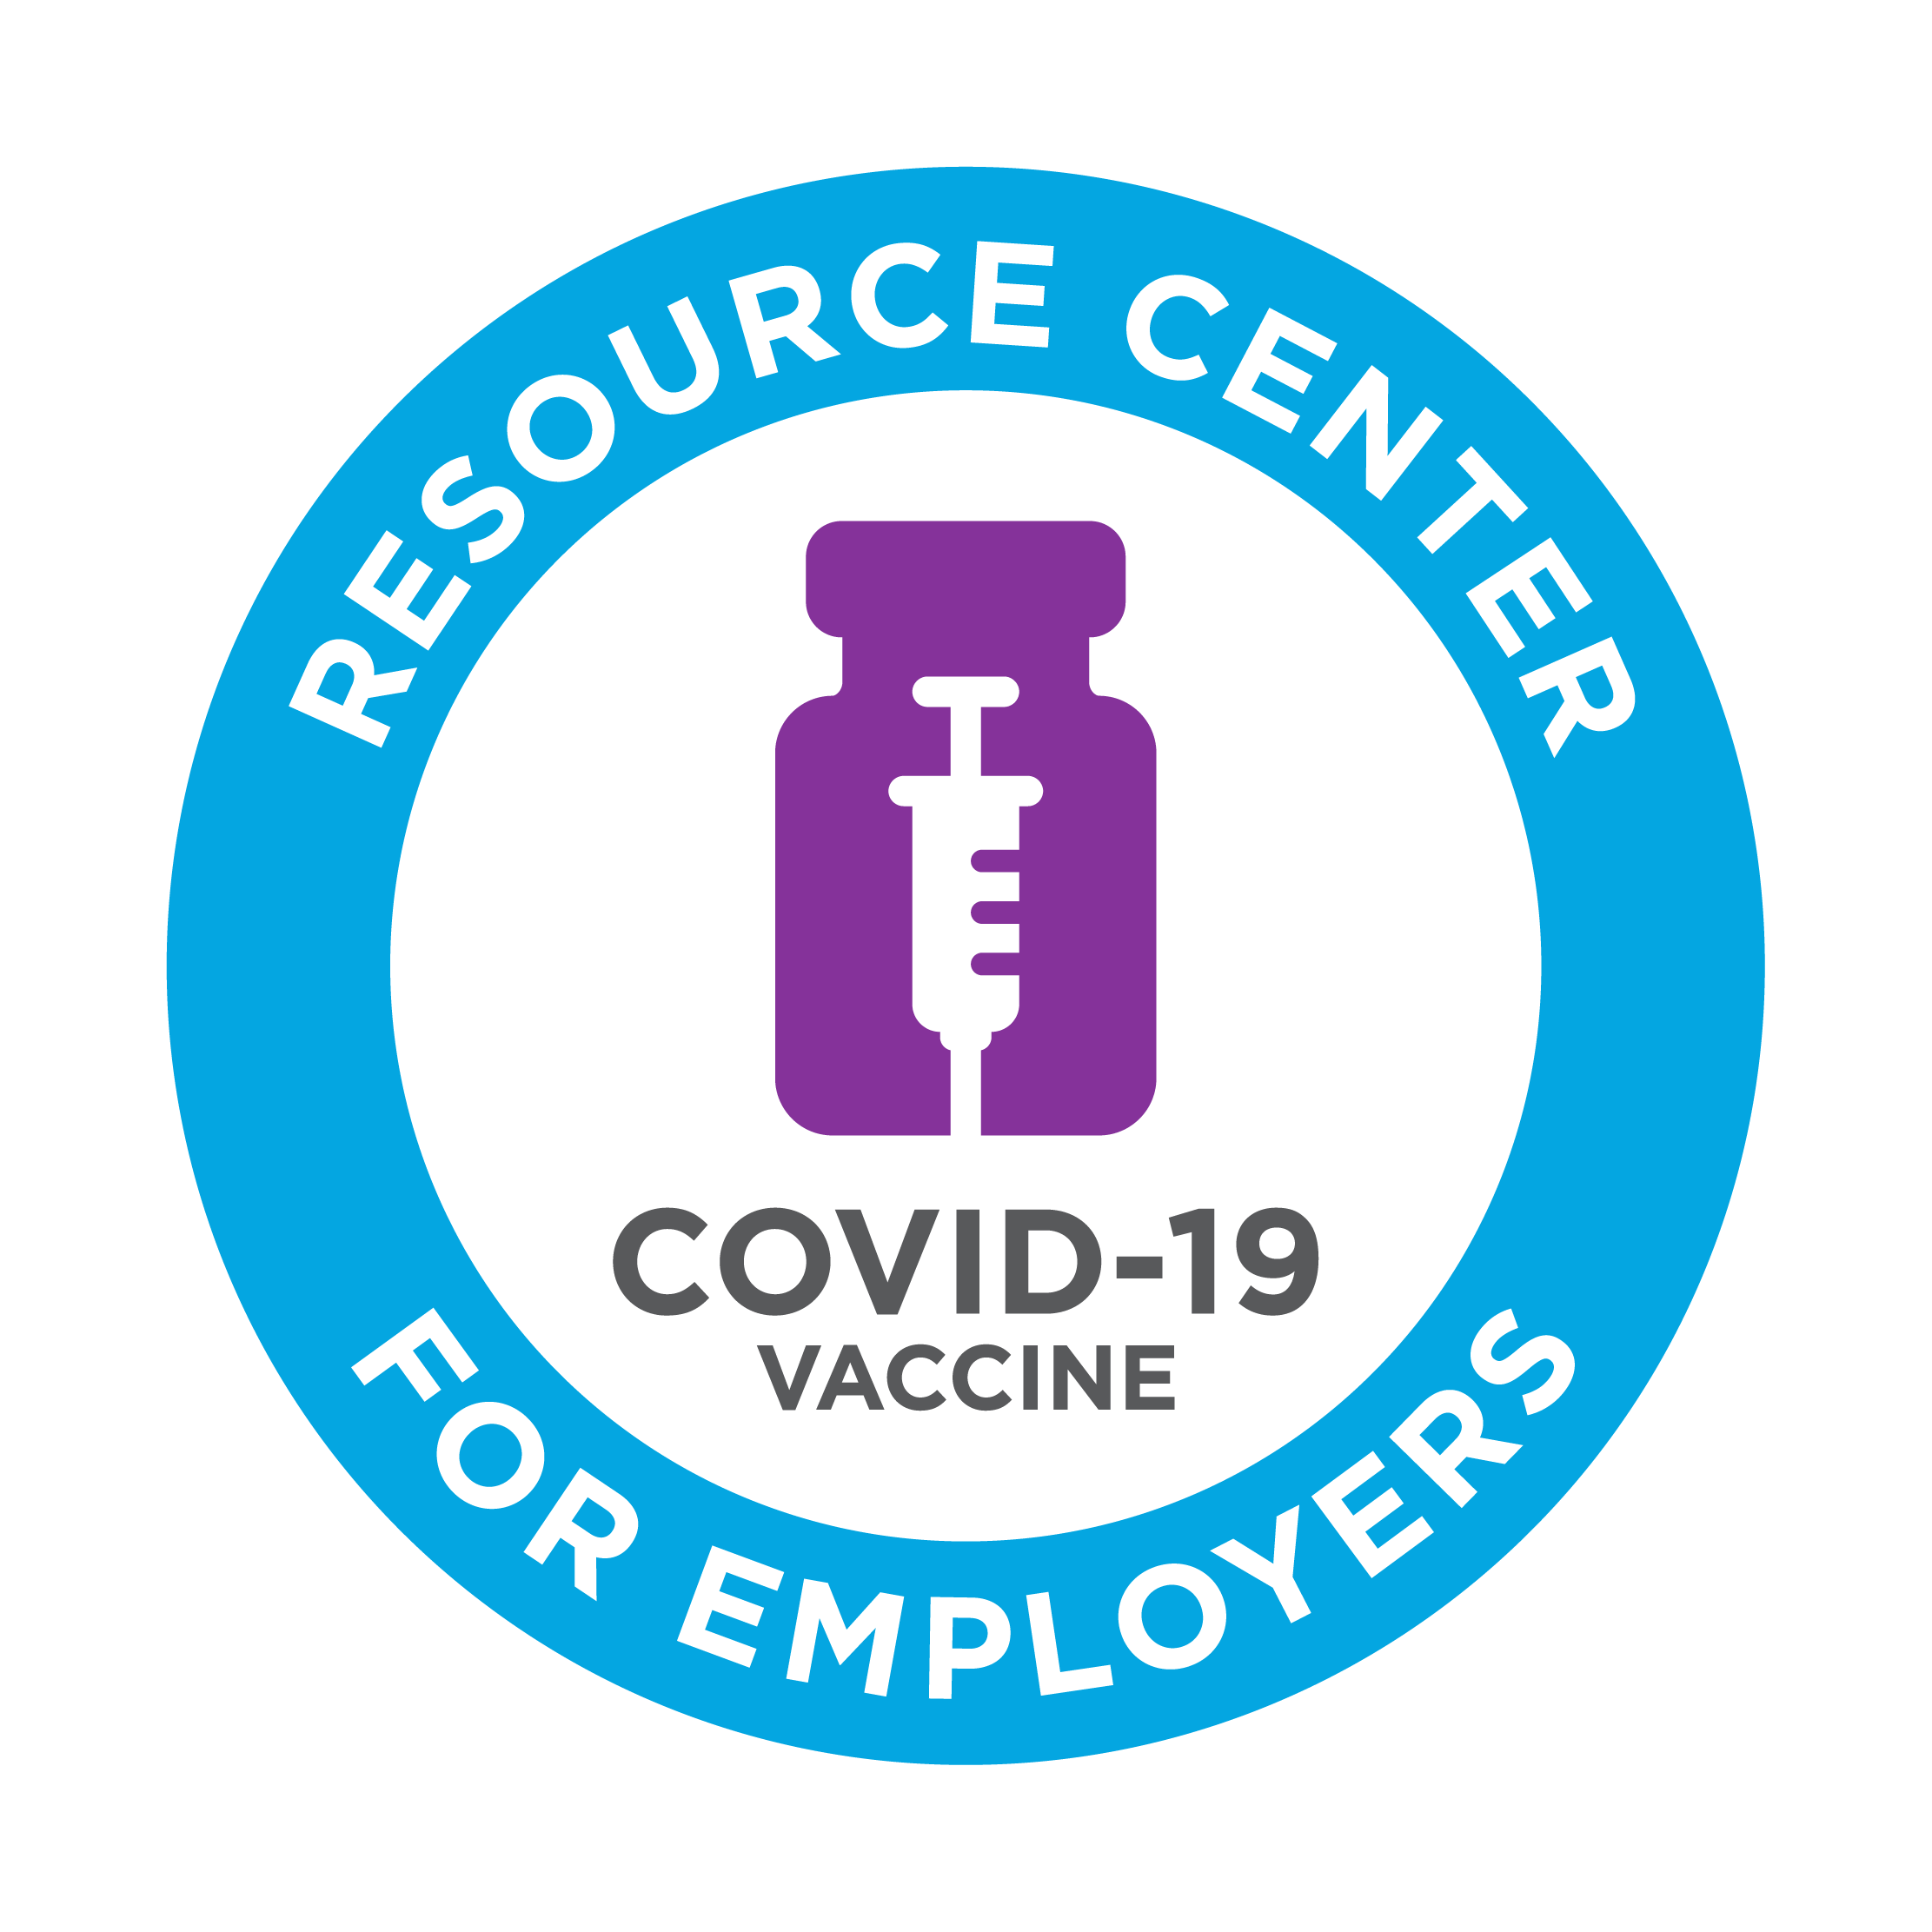 vaccine_resource_center_for_employers-04